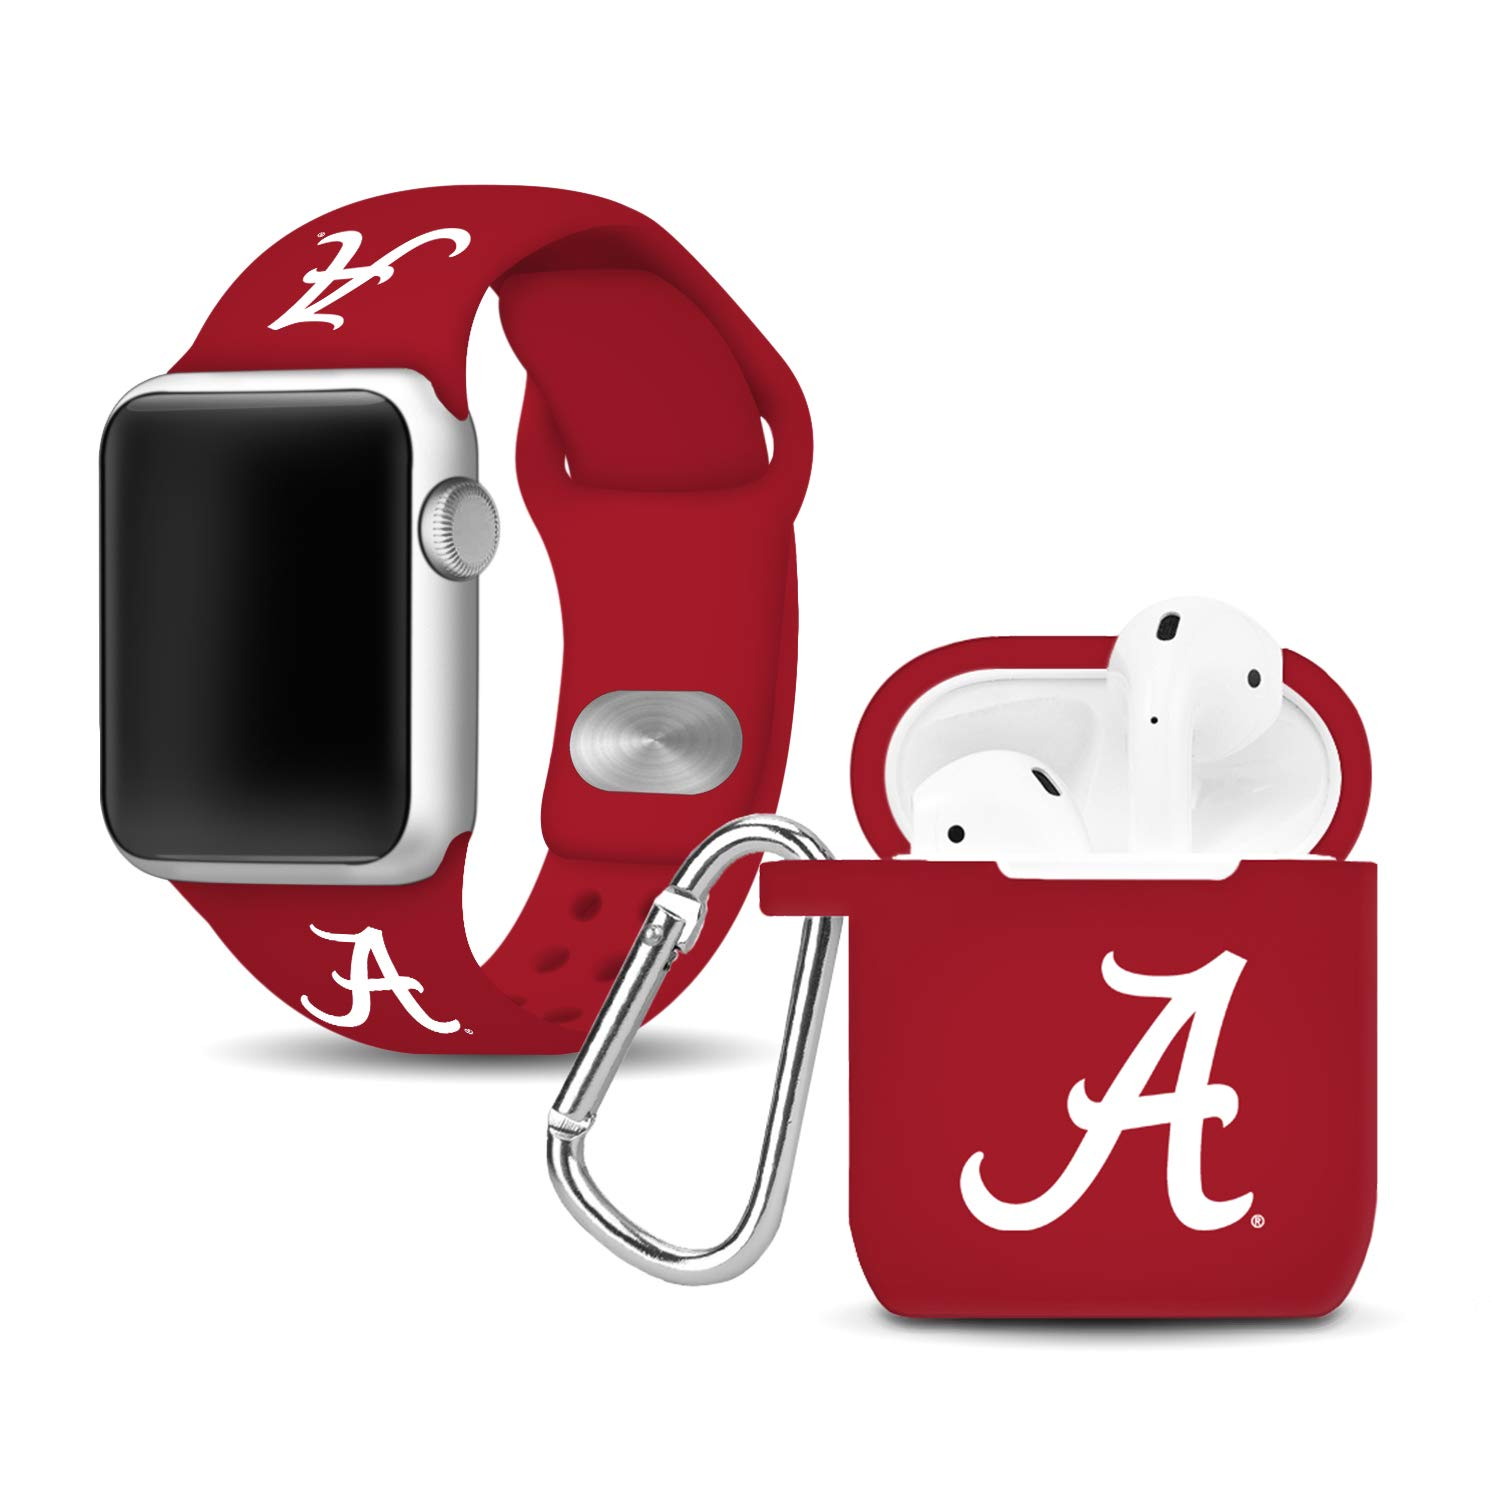 Affinity Bands Alabama Crimson Tide Silicone Watch Band and Case Cover Combo Compatible with Apple Watch and AirPod Case by Affinity Bands